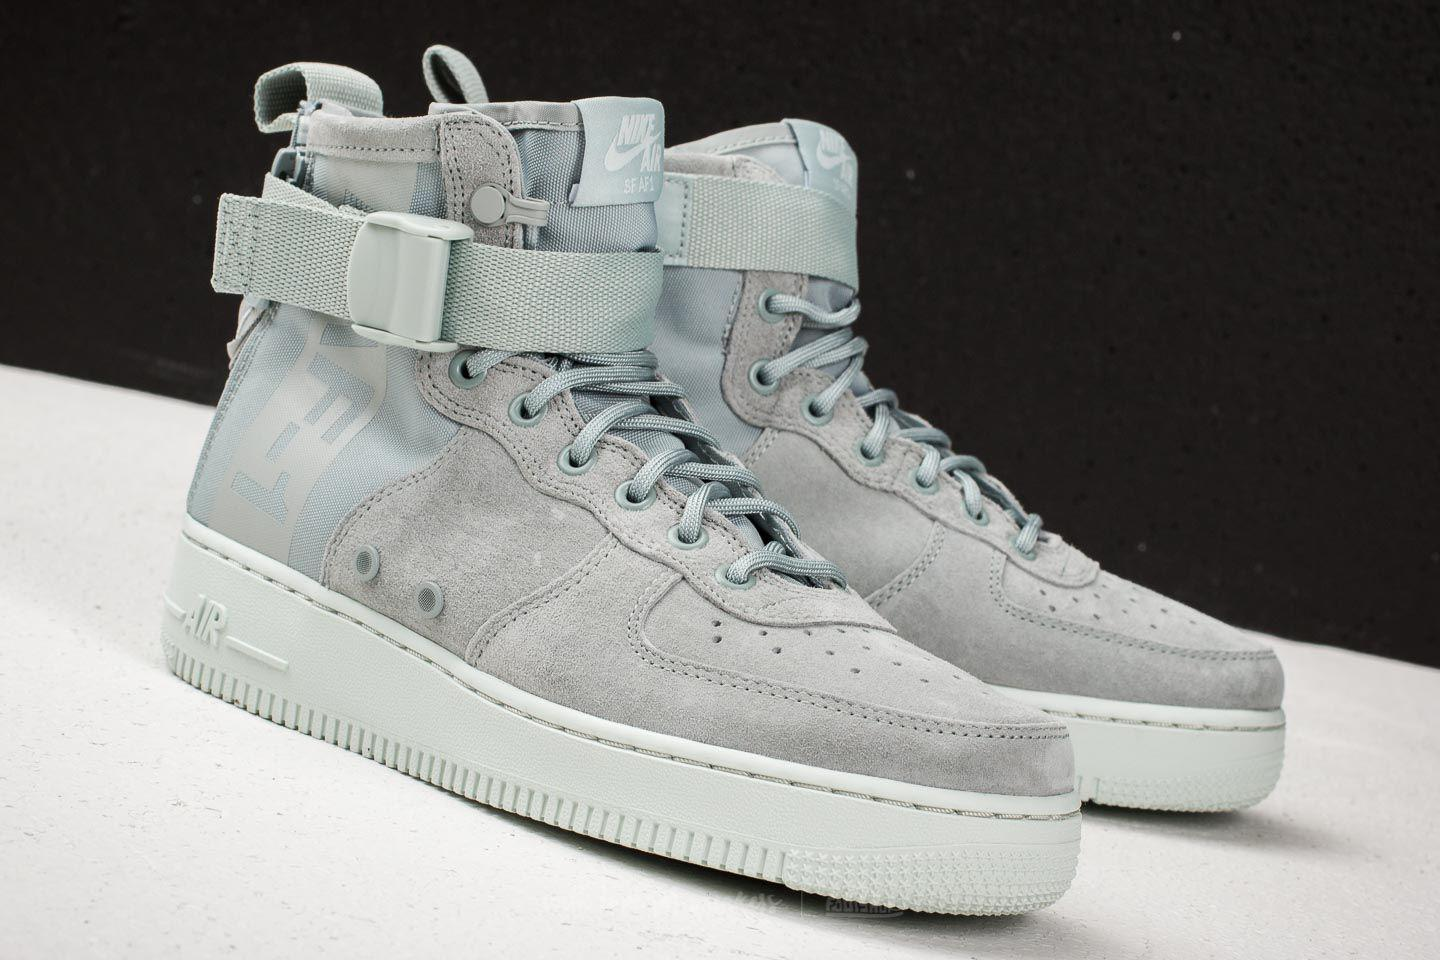 Nike SF Air Force 1 MID W Light Pumice/ Light Pumice